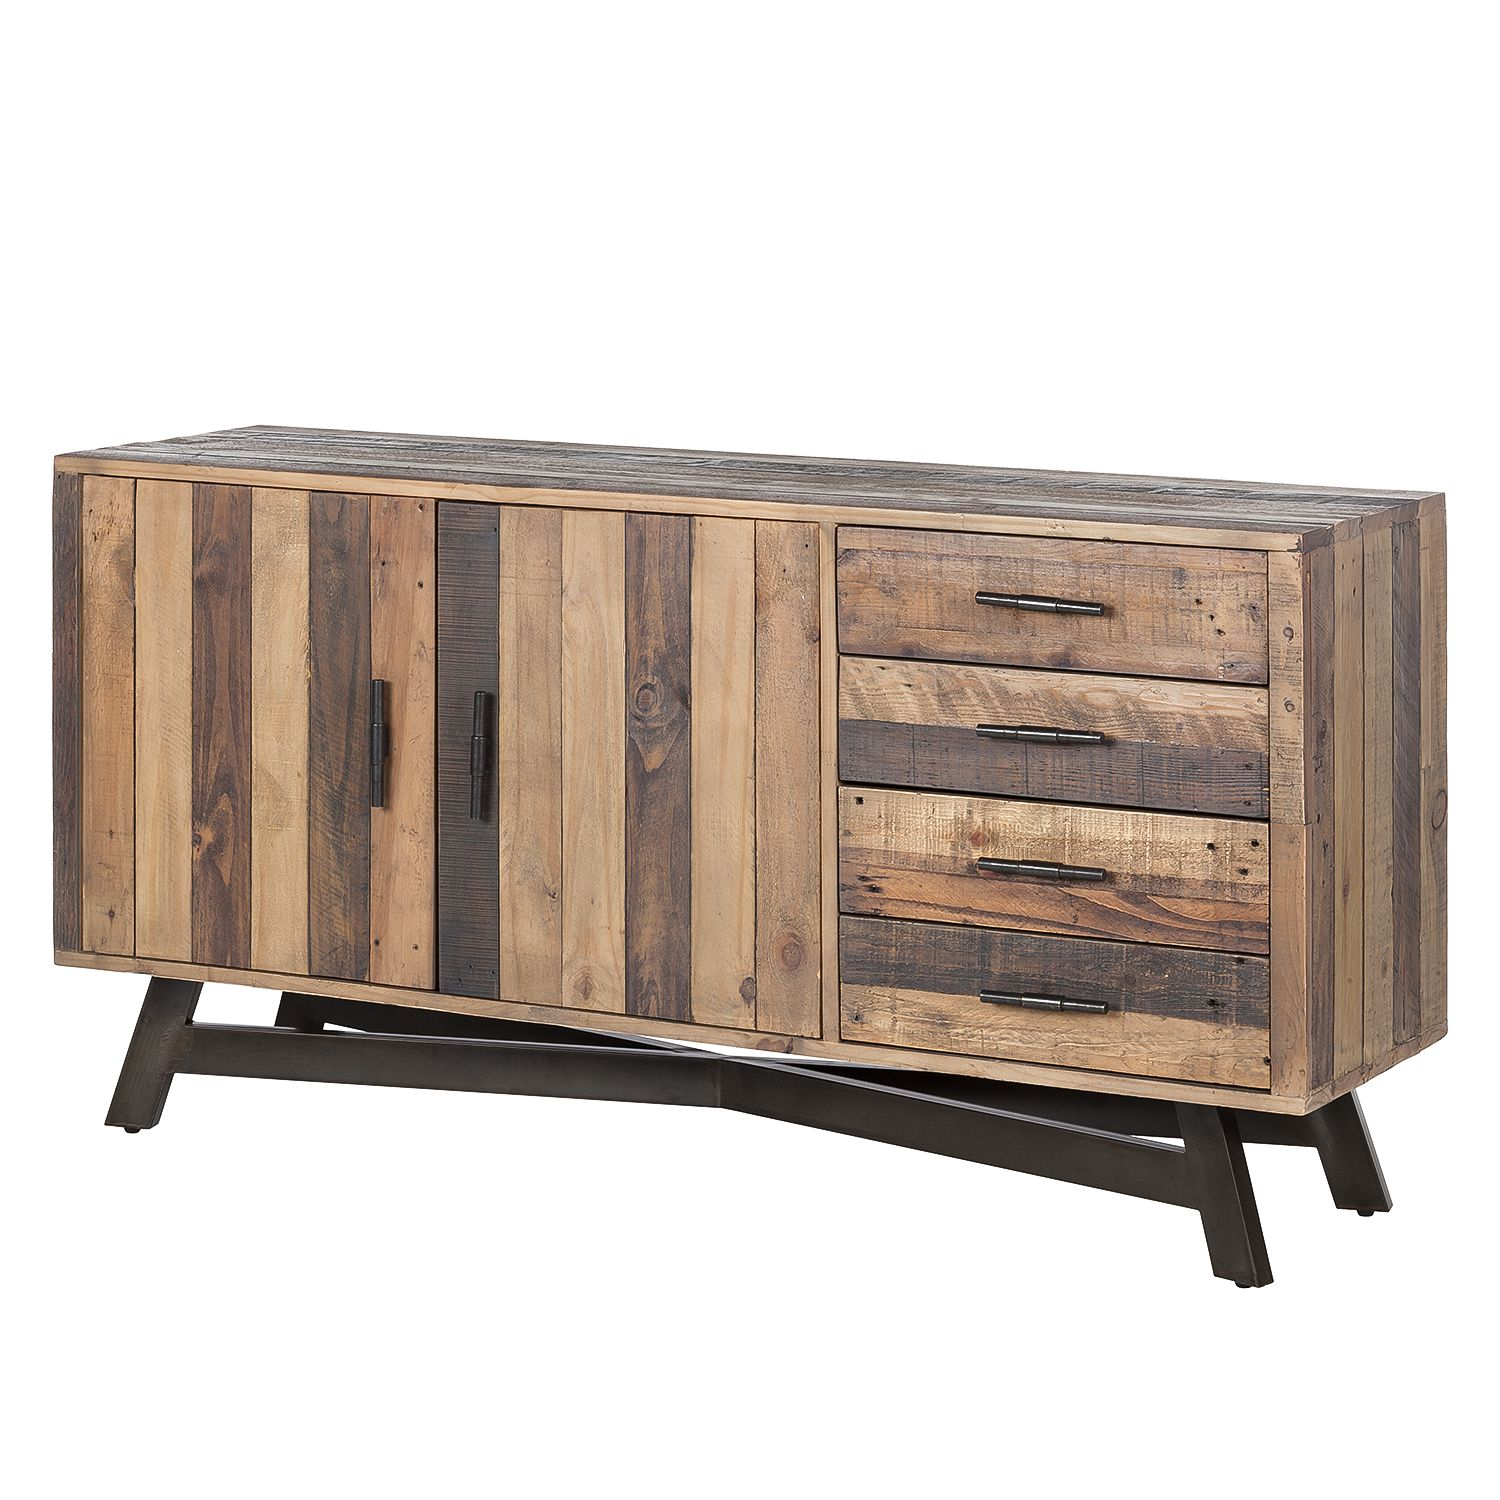 sideboard tamati pinie massiv jetzt kaufen. Black Bedroom Furniture Sets. Home Design Ideas